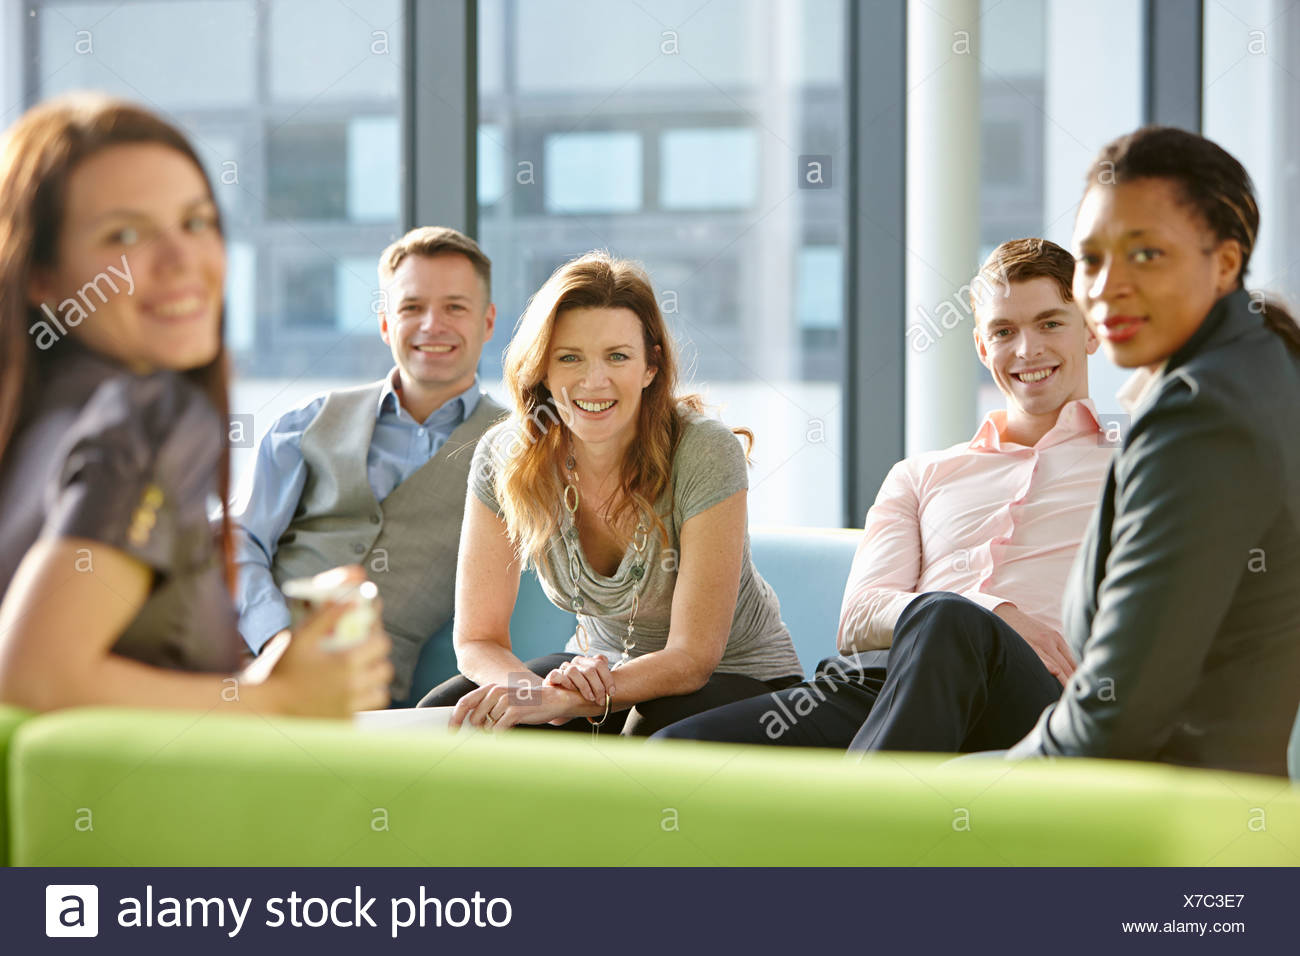 Portrait of business colleagues smiling - Stock Image